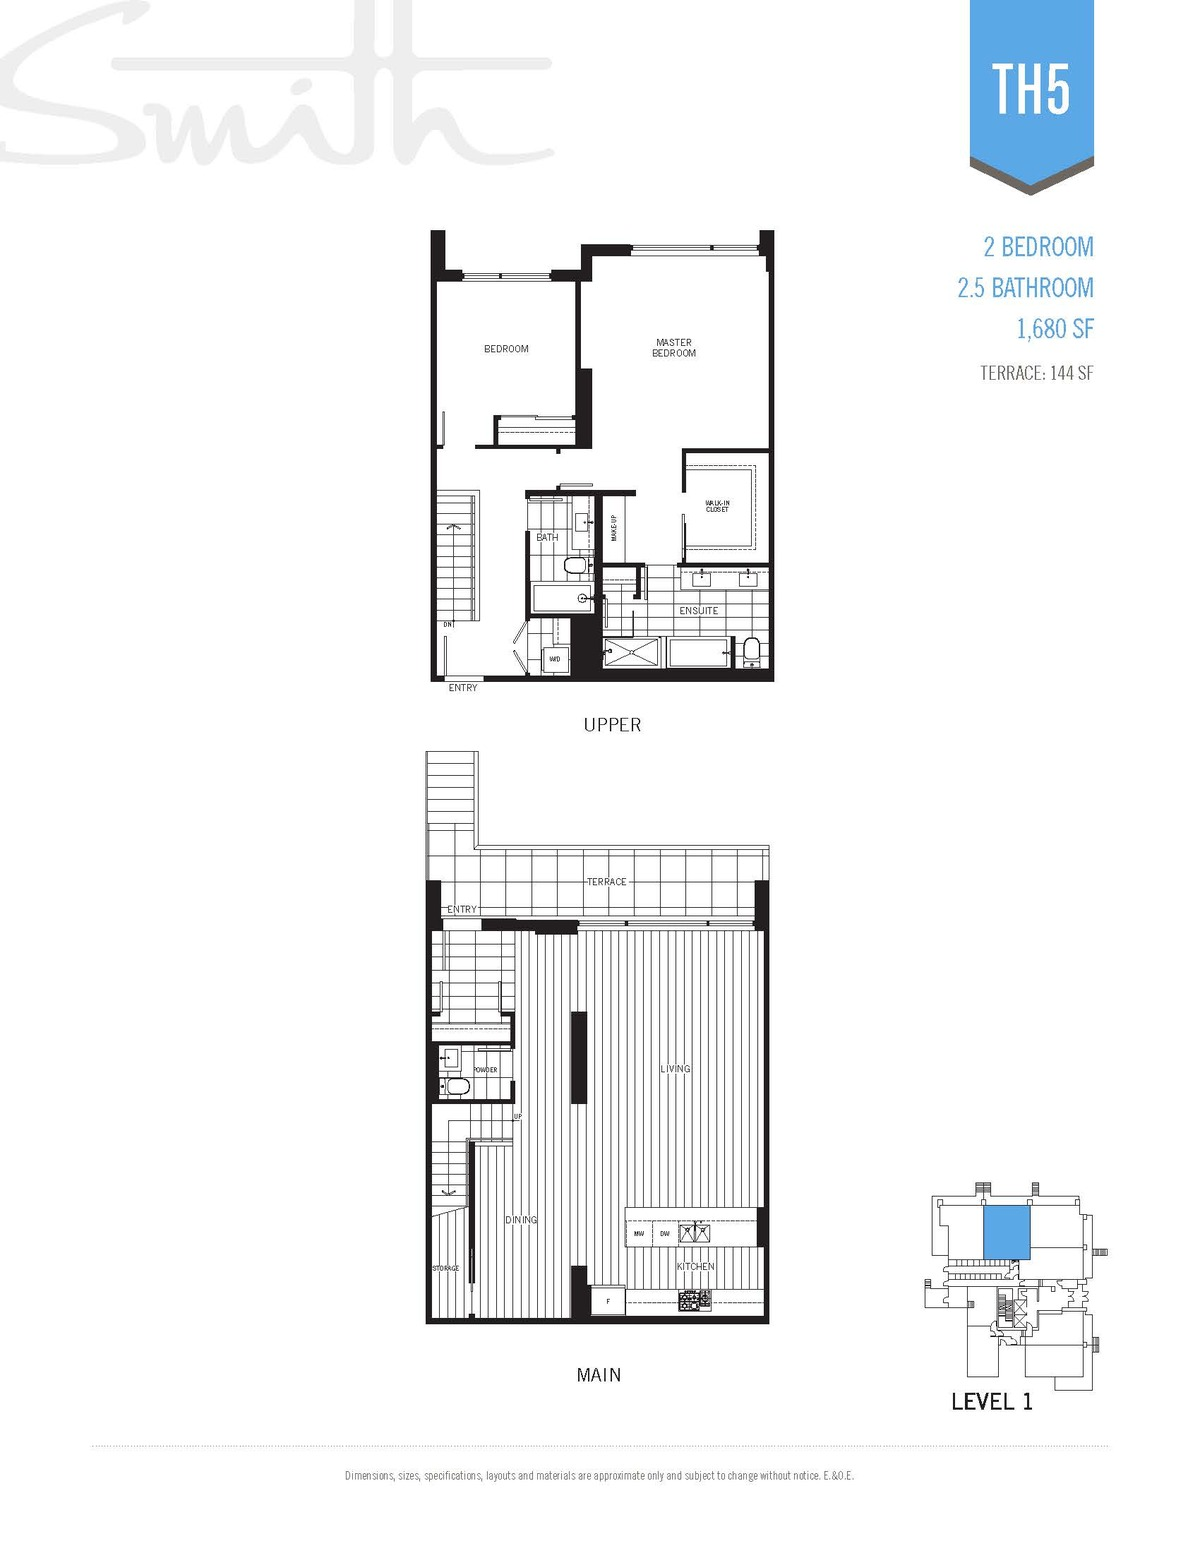 Smith Floorplan TH5